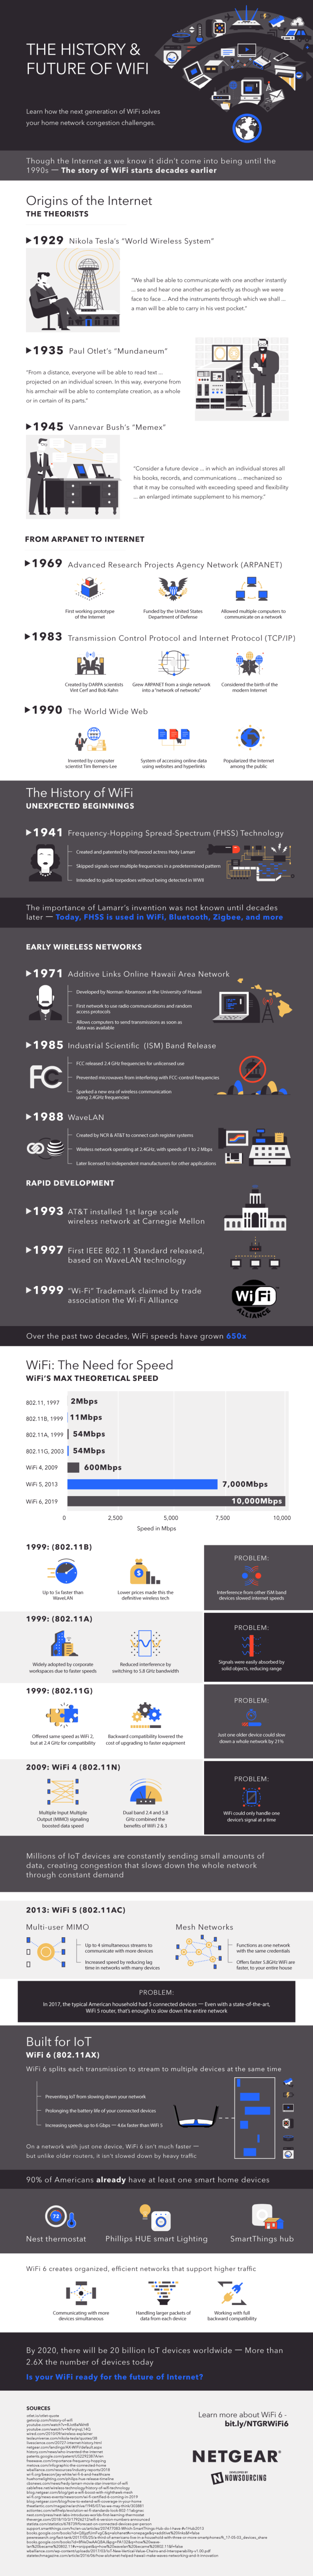 WiFi6 Is Coming! Is Your Network Ready? 1